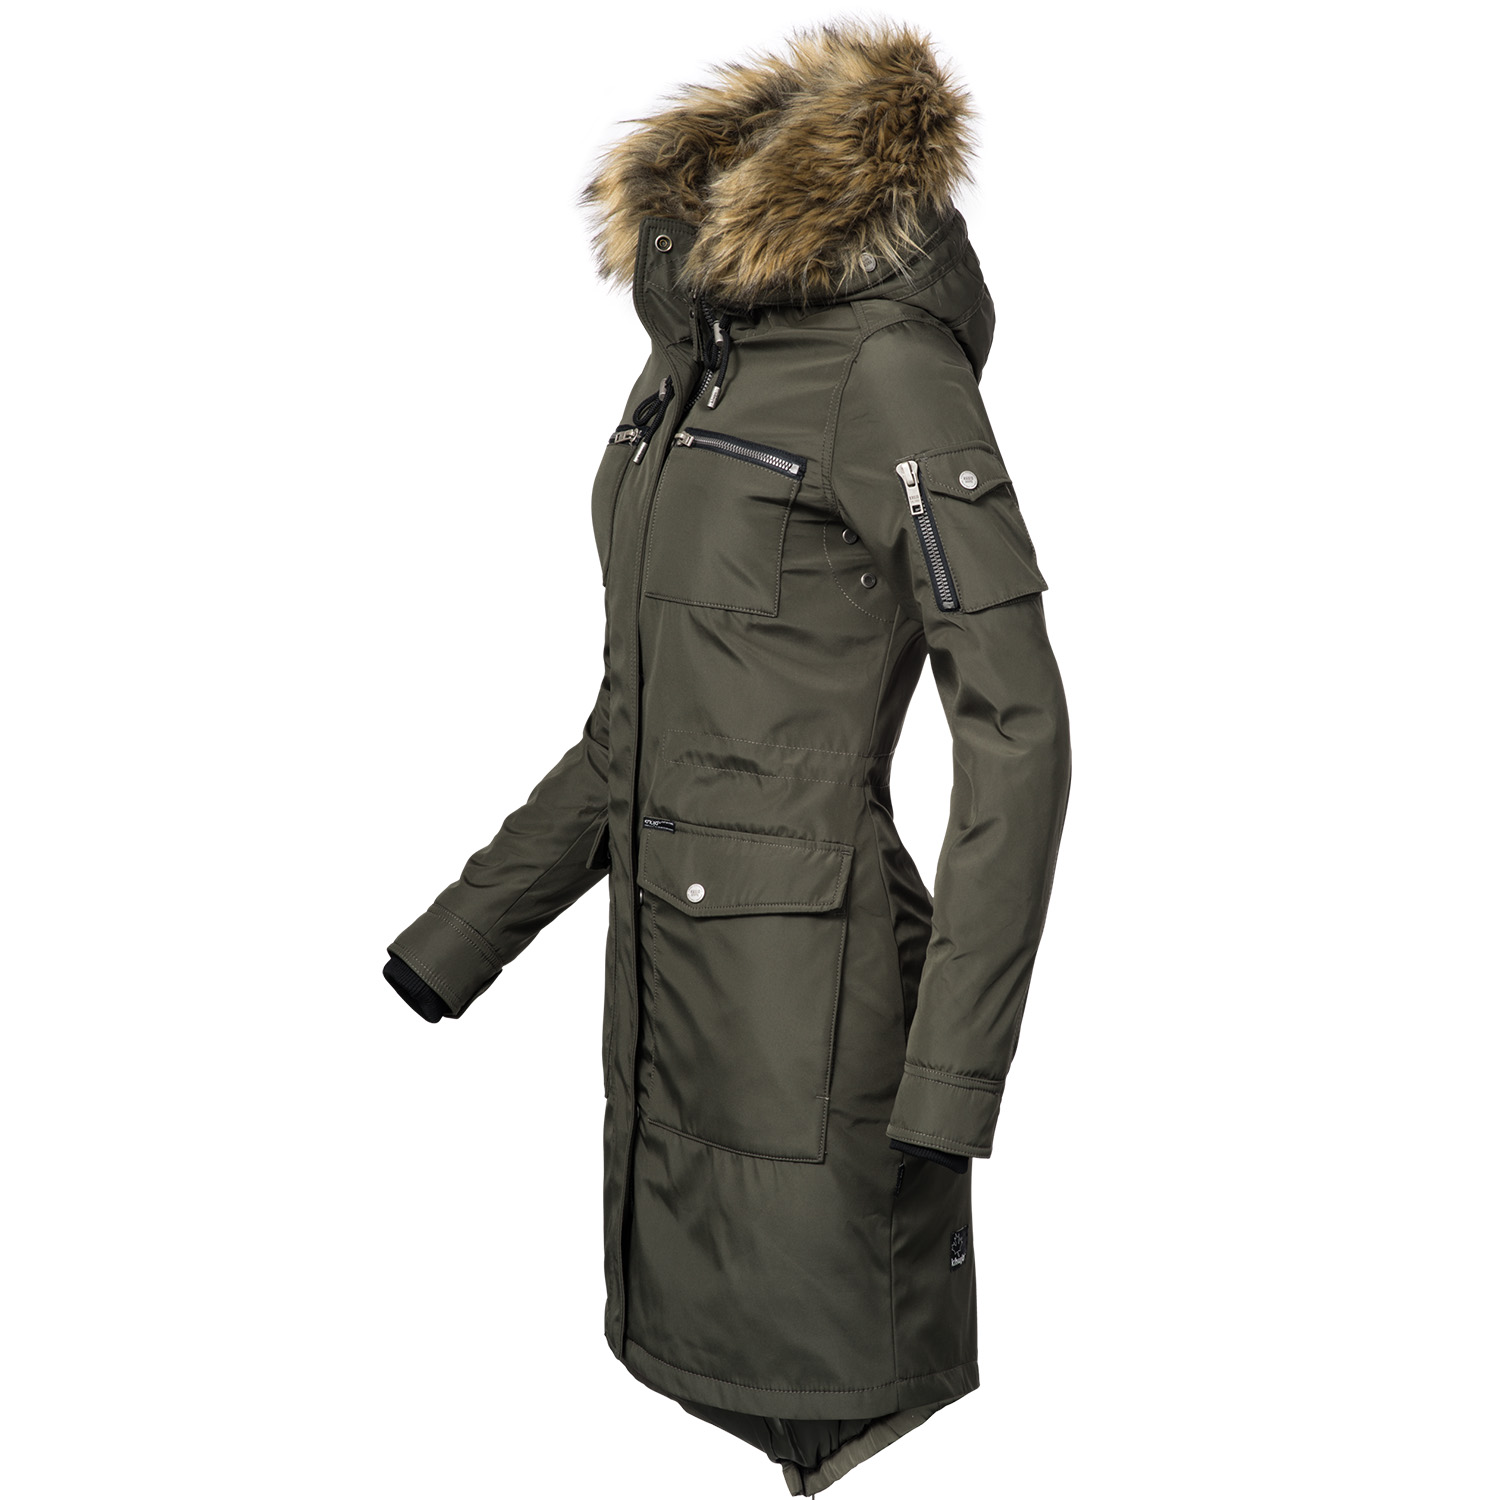 khujo balm damen winter parka mantel jacke kunstpelz kapuze gef ttert warm ebay. Black Bedroom Furniture Sets. Home Design Ideas